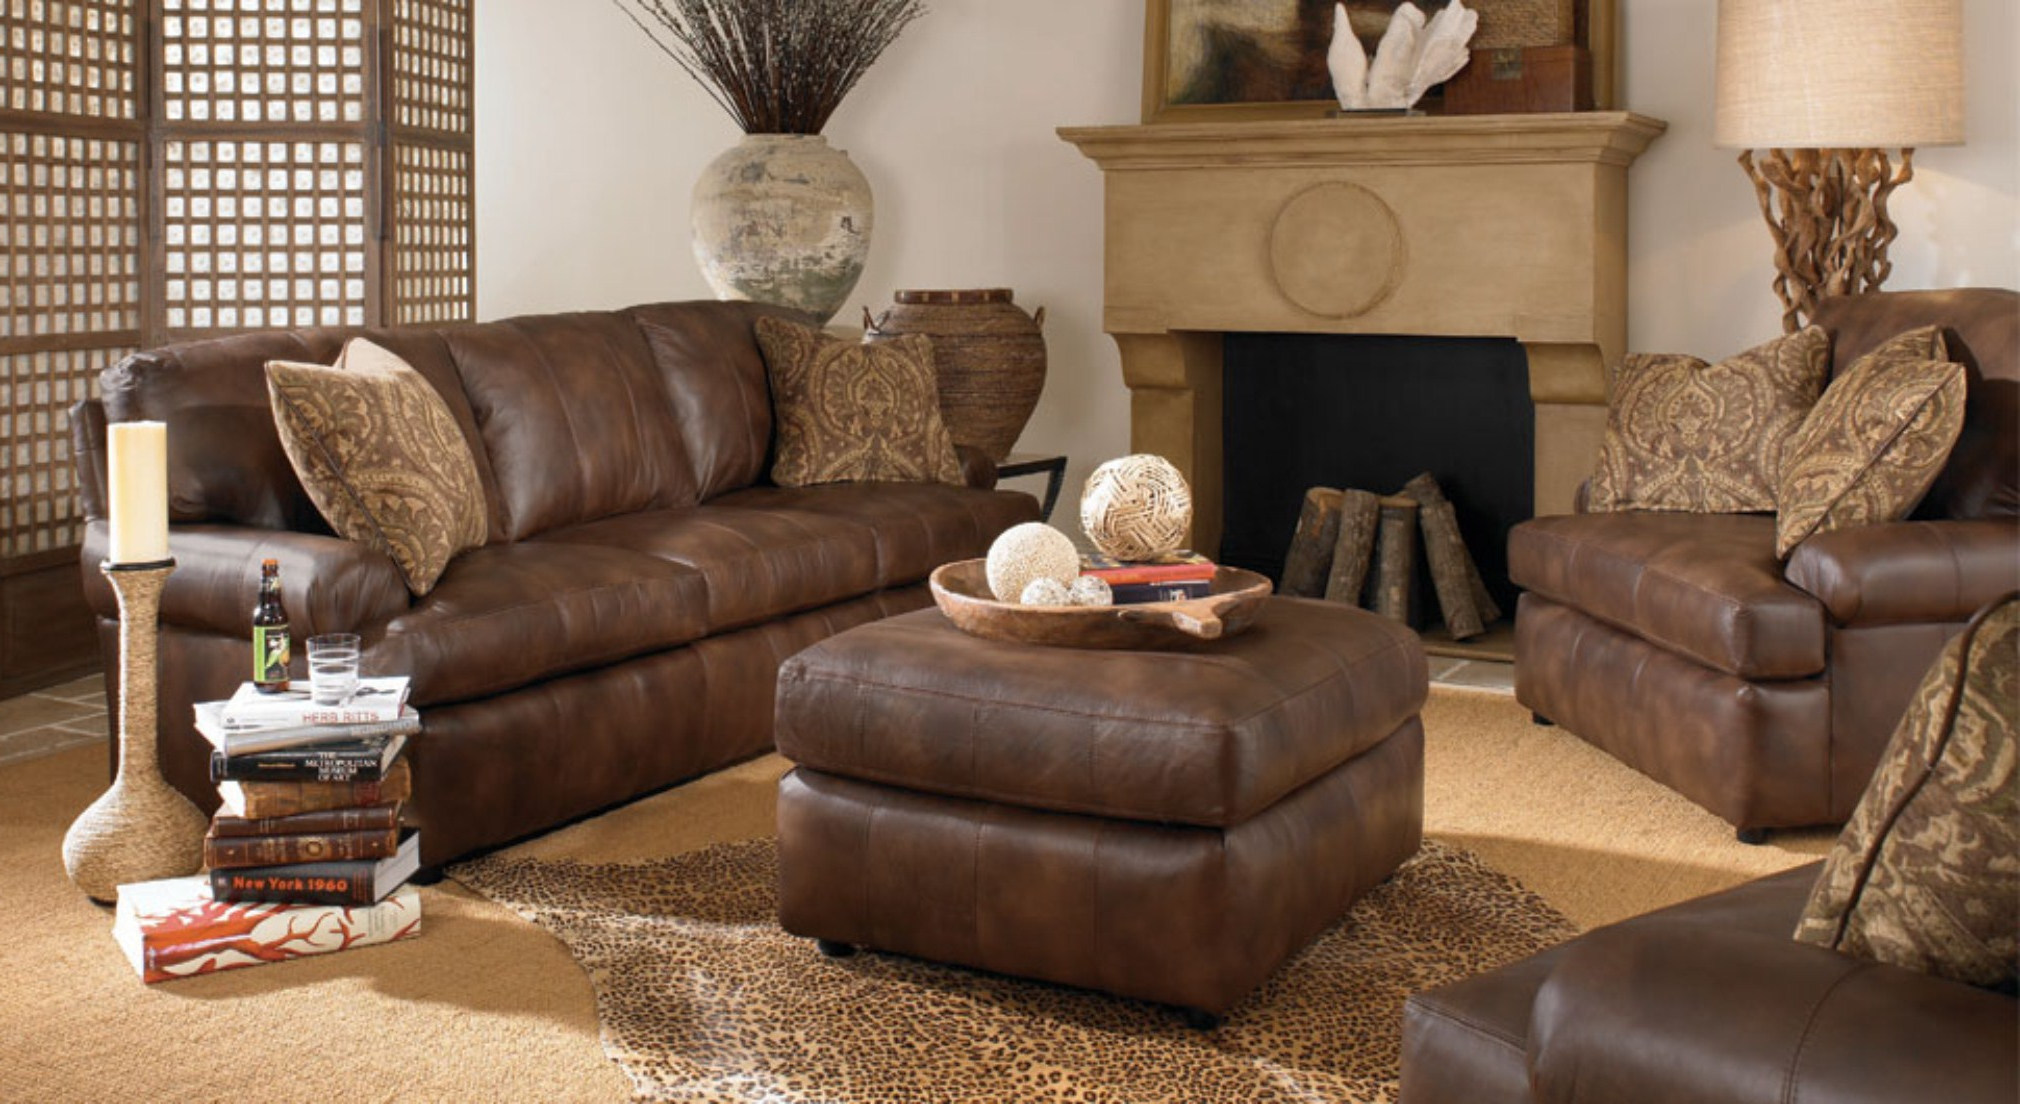 Living Furniture Sets Sofa Sets For Living Room Jinanhongyu 95 Living Room Furniture Sets On